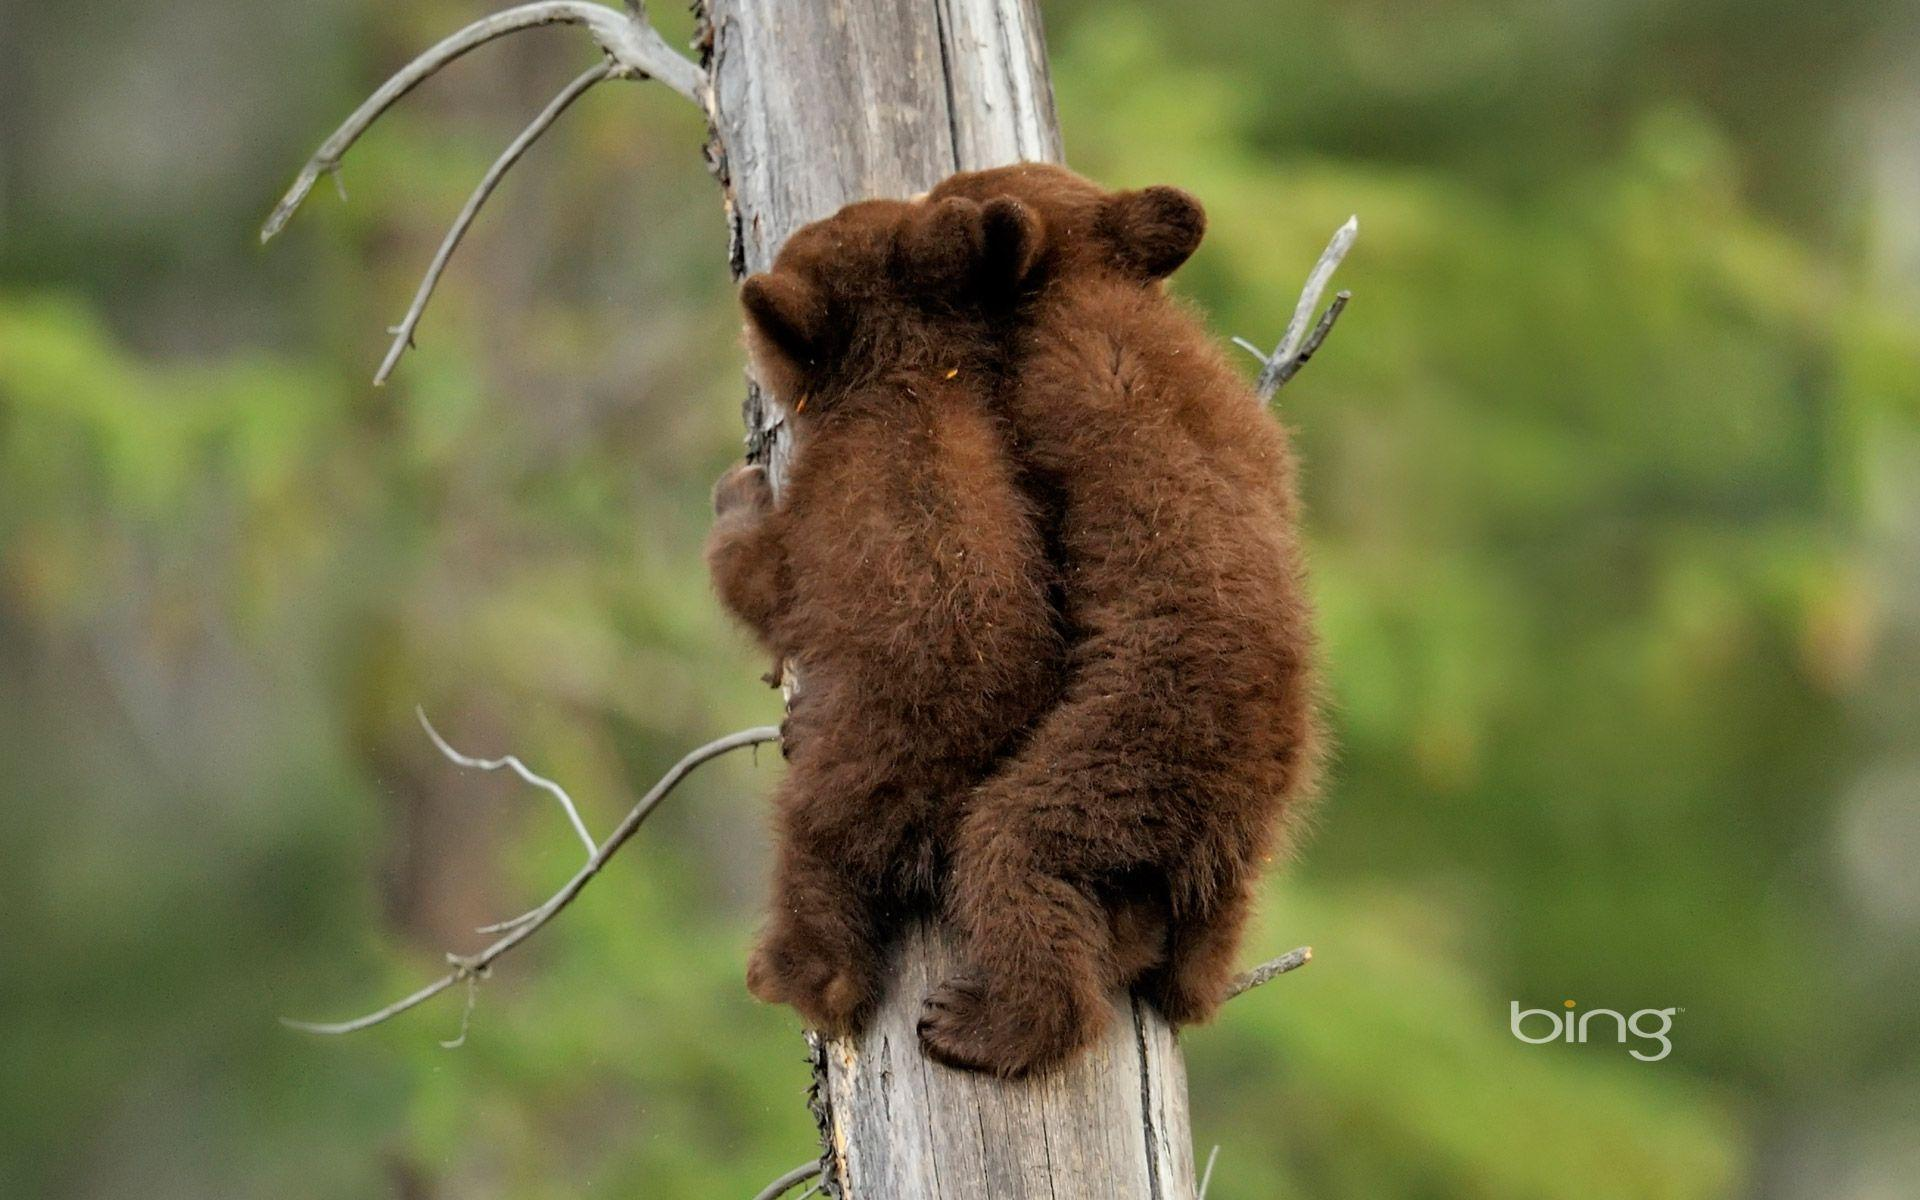 Baby Bears Wallpapers - Wallpaper Cave